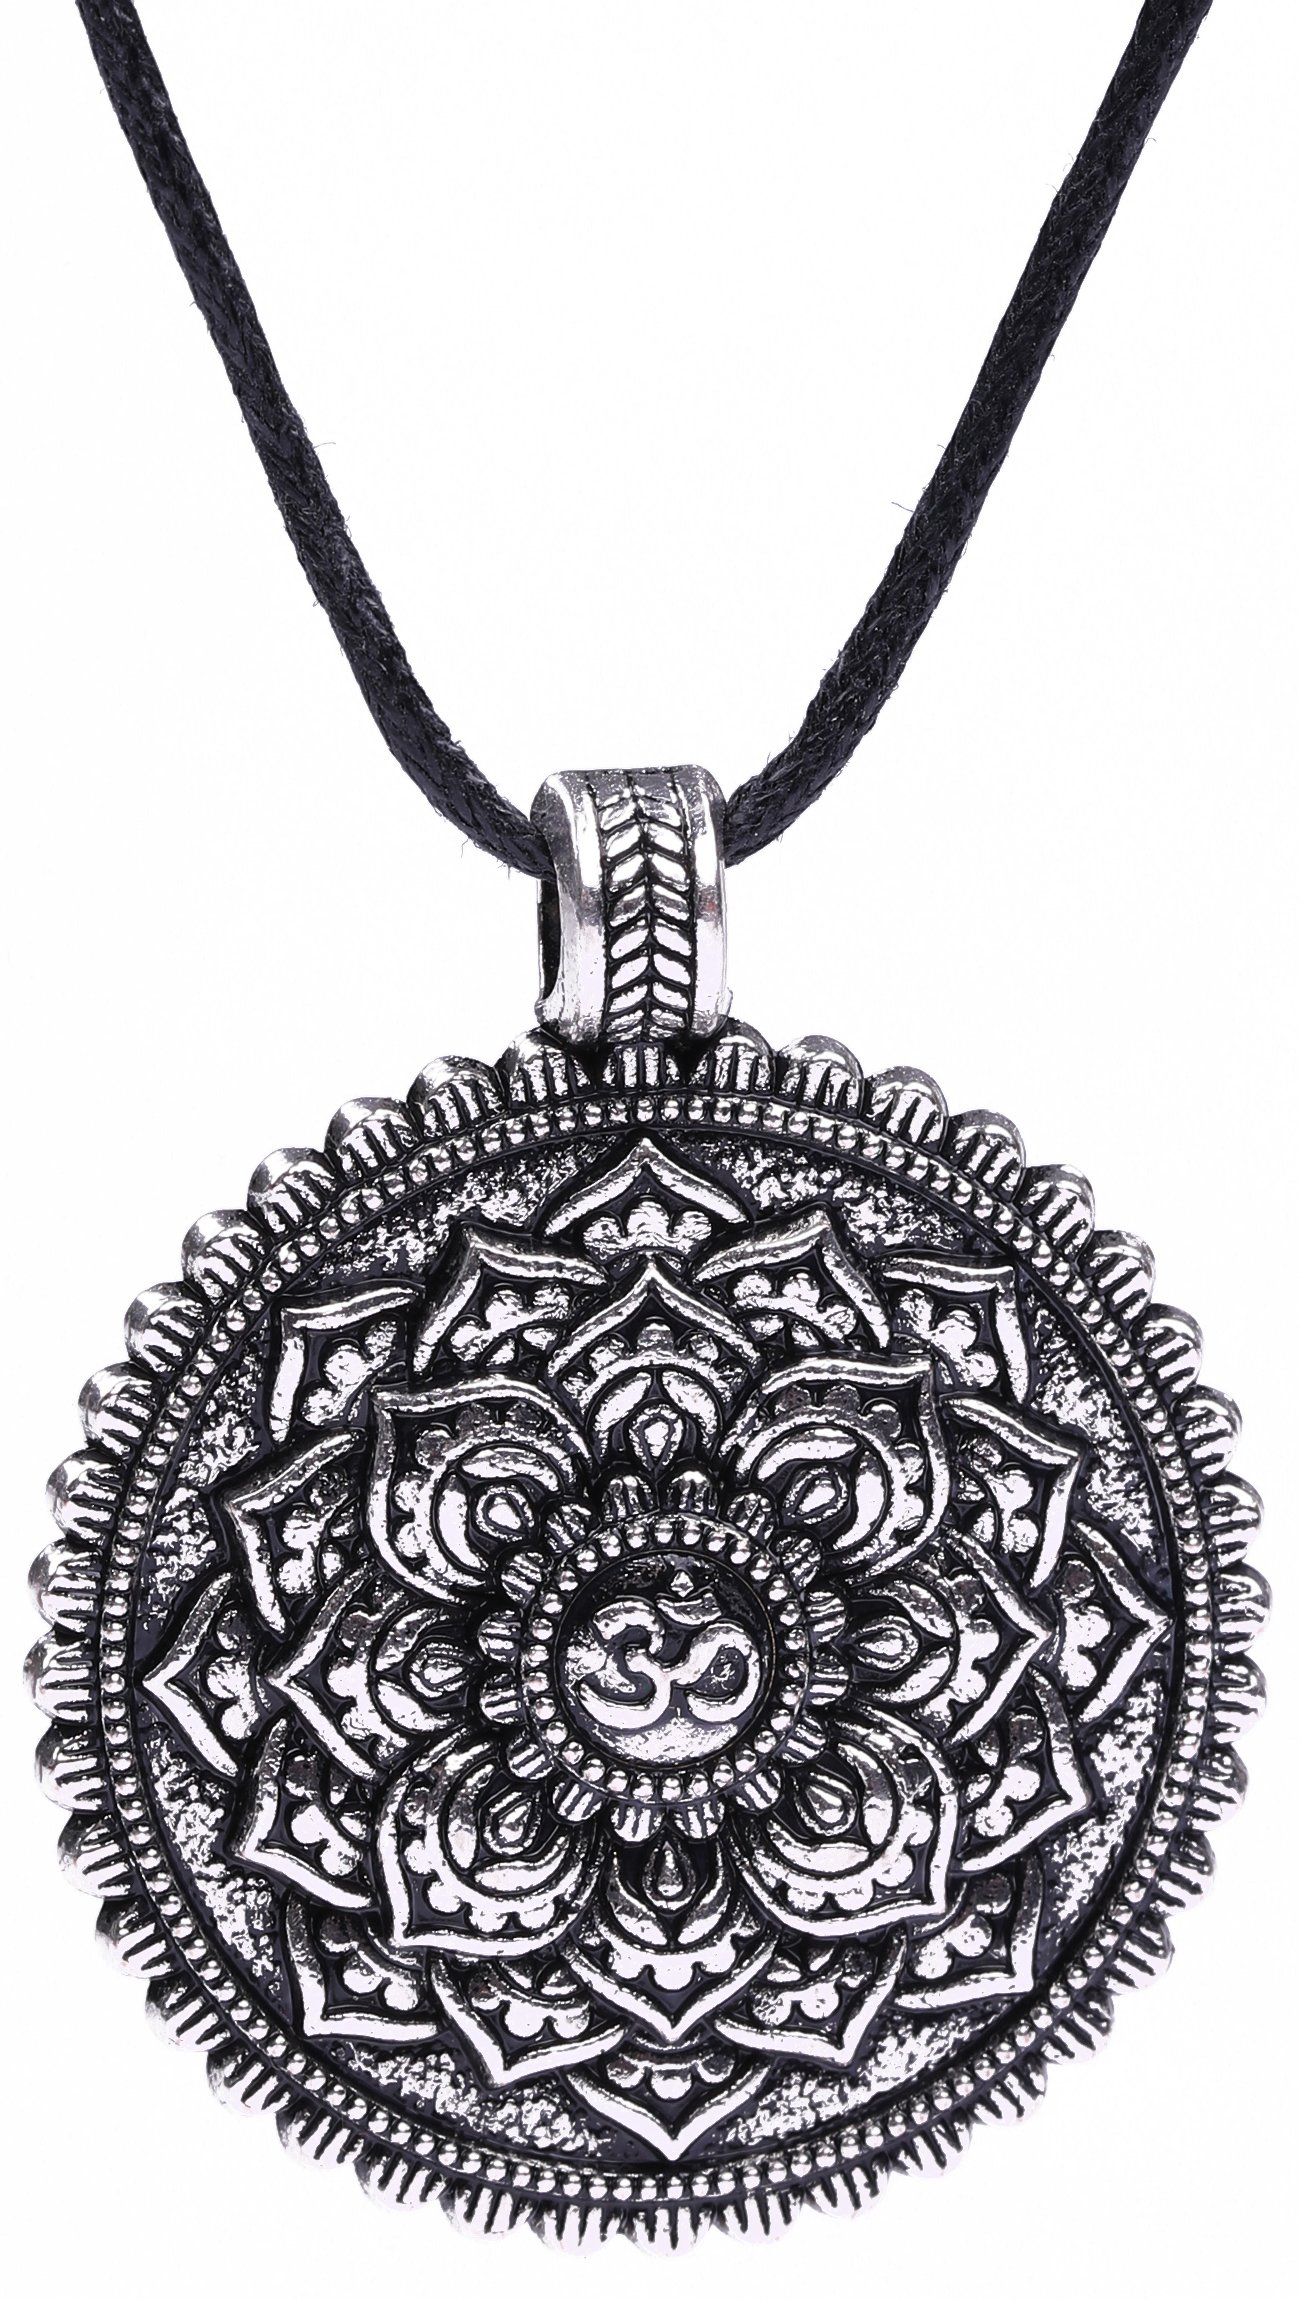 Wicca Flower of Life OM Yoga Balance of Life Round Coin Pendant Necklace (Antique Silver)